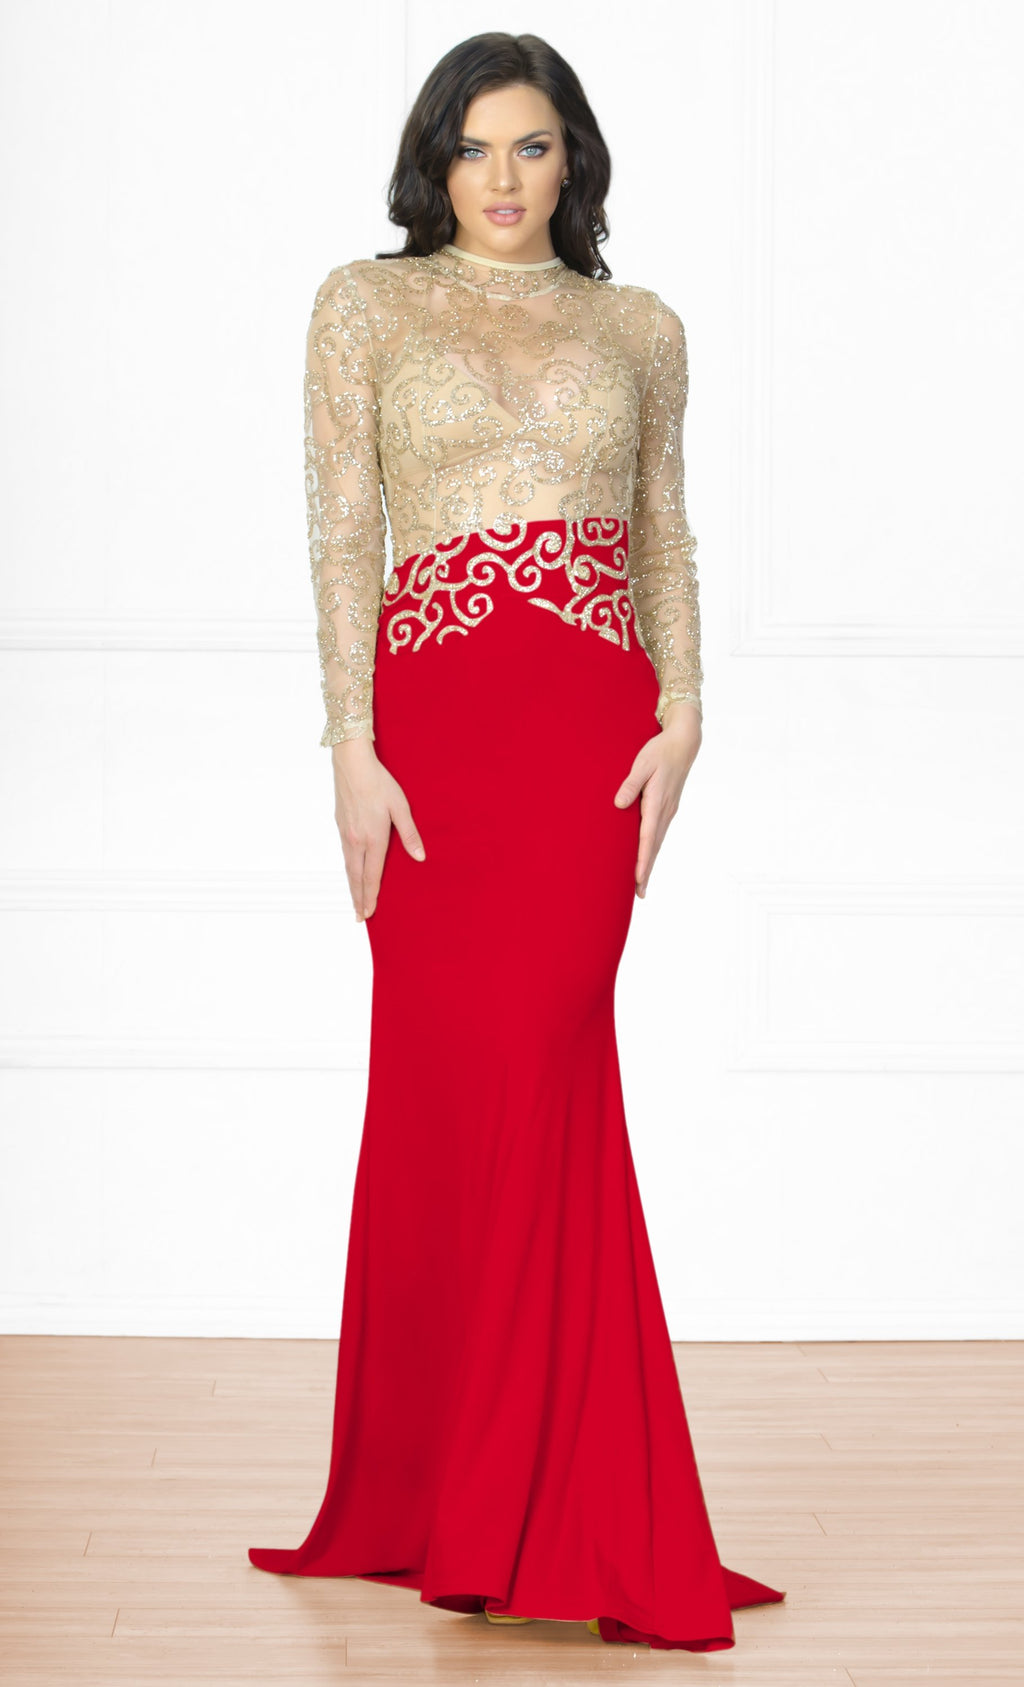 ed7391c824 Indie XO Icon Status Red Gold Long Sleeve Sheer Glitter Mock Neck Open Back Maxi  Dress